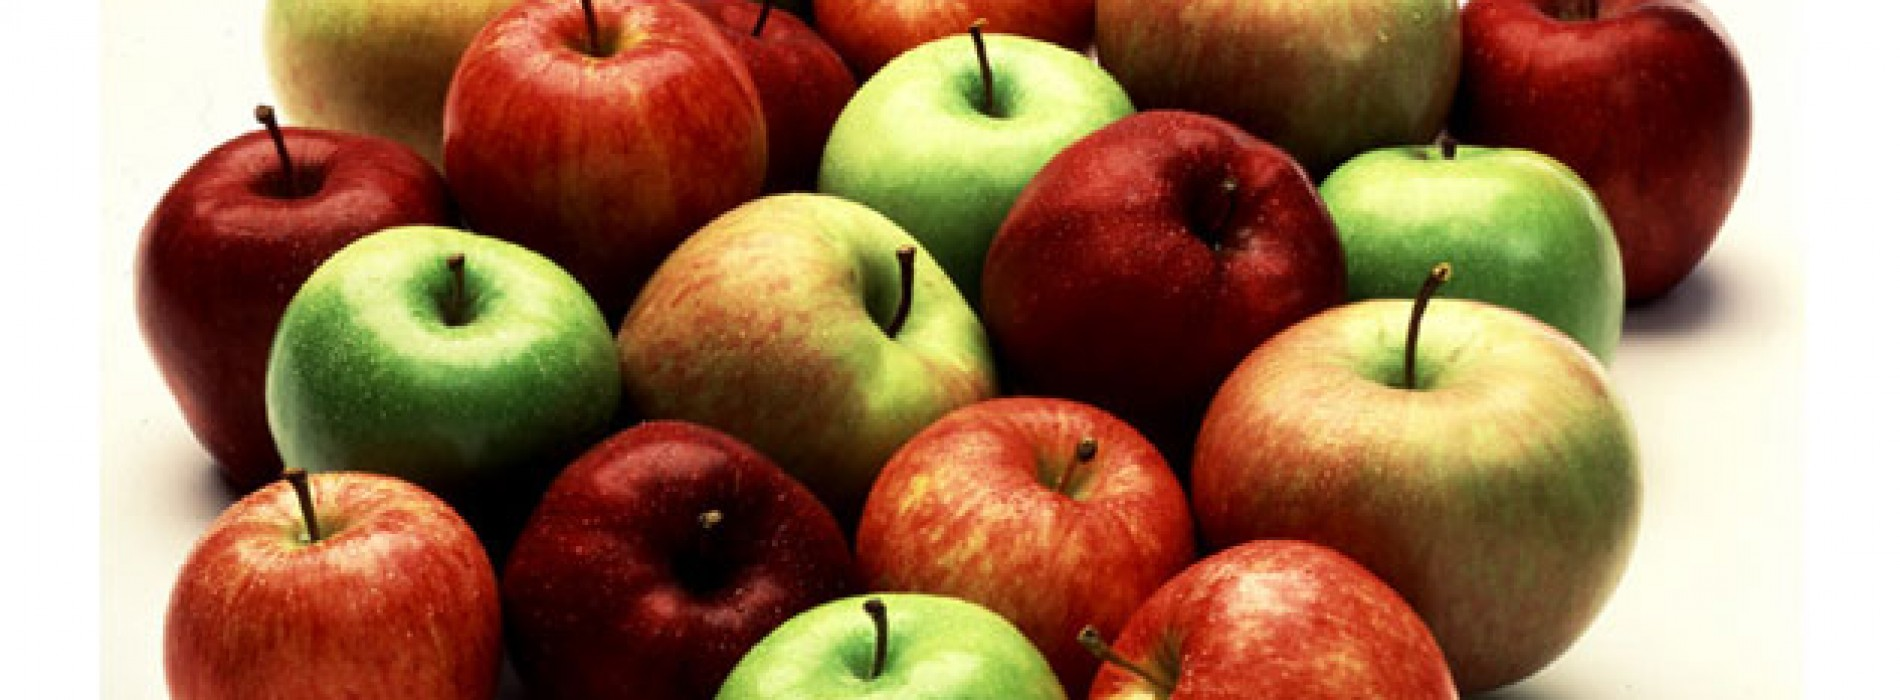 What's so great about apples?